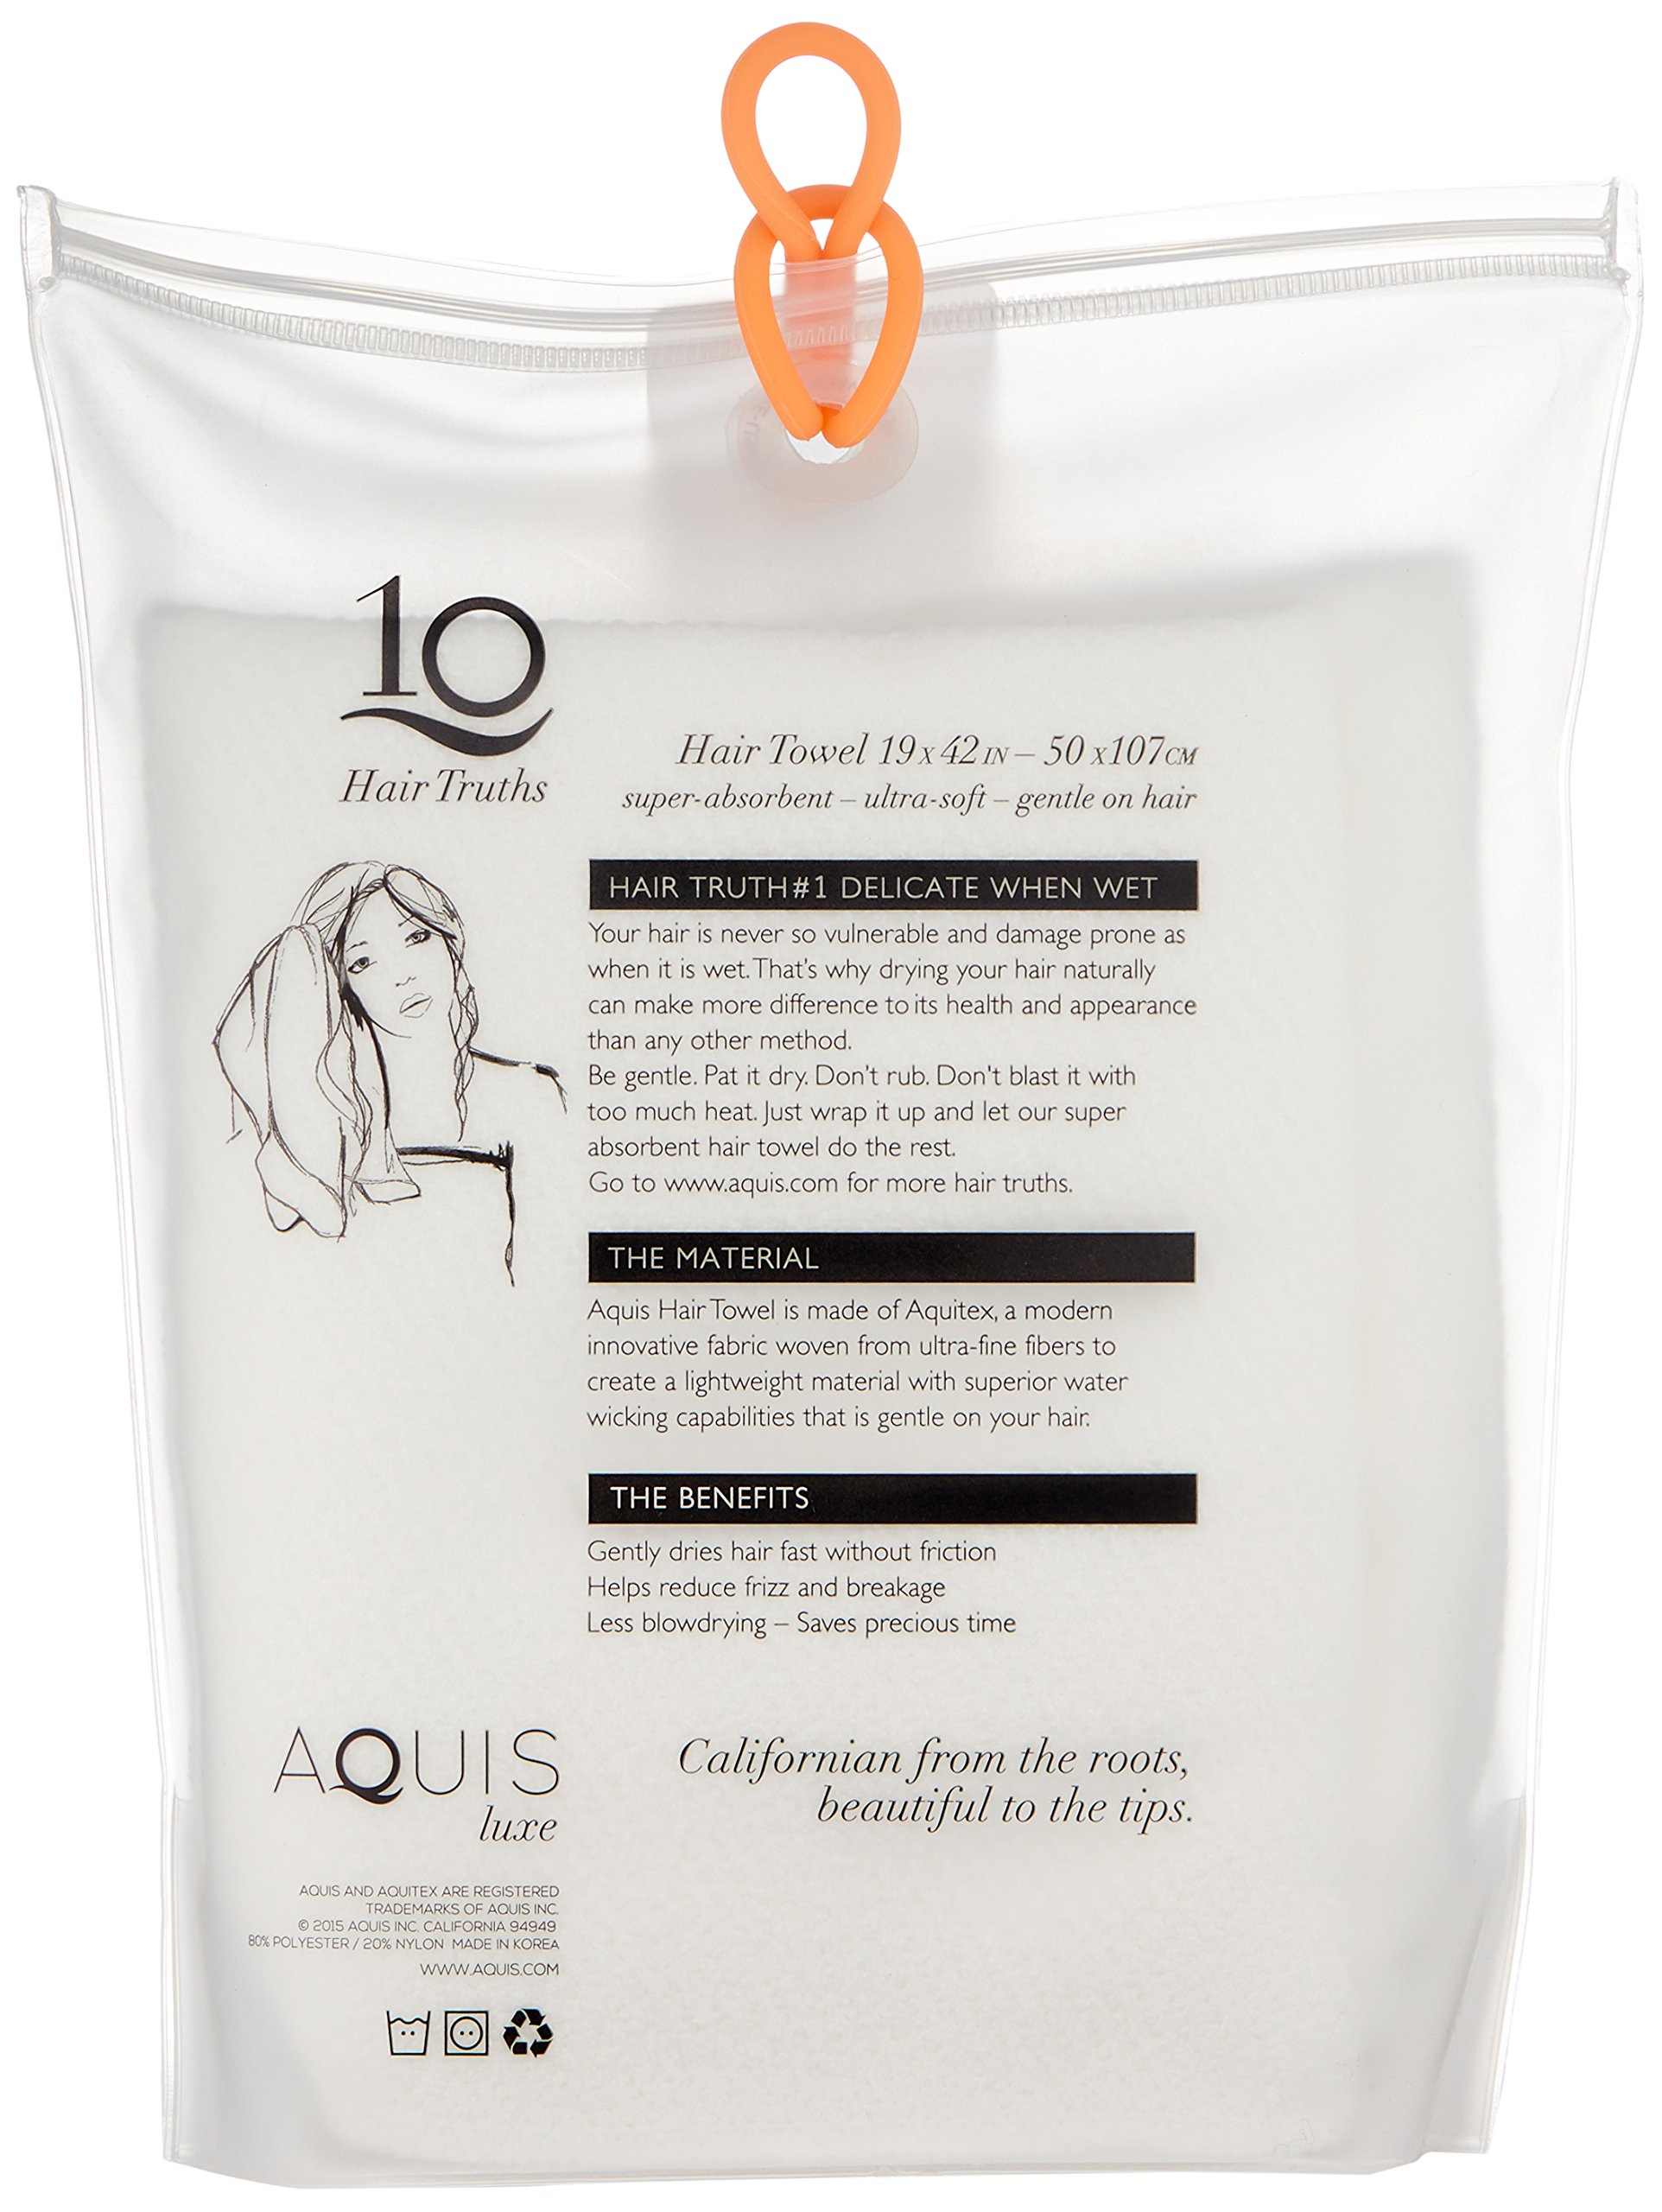 Aquis Lisse Luxe Hair Towel, White, 7 oz. by AQUIS (Image #2)